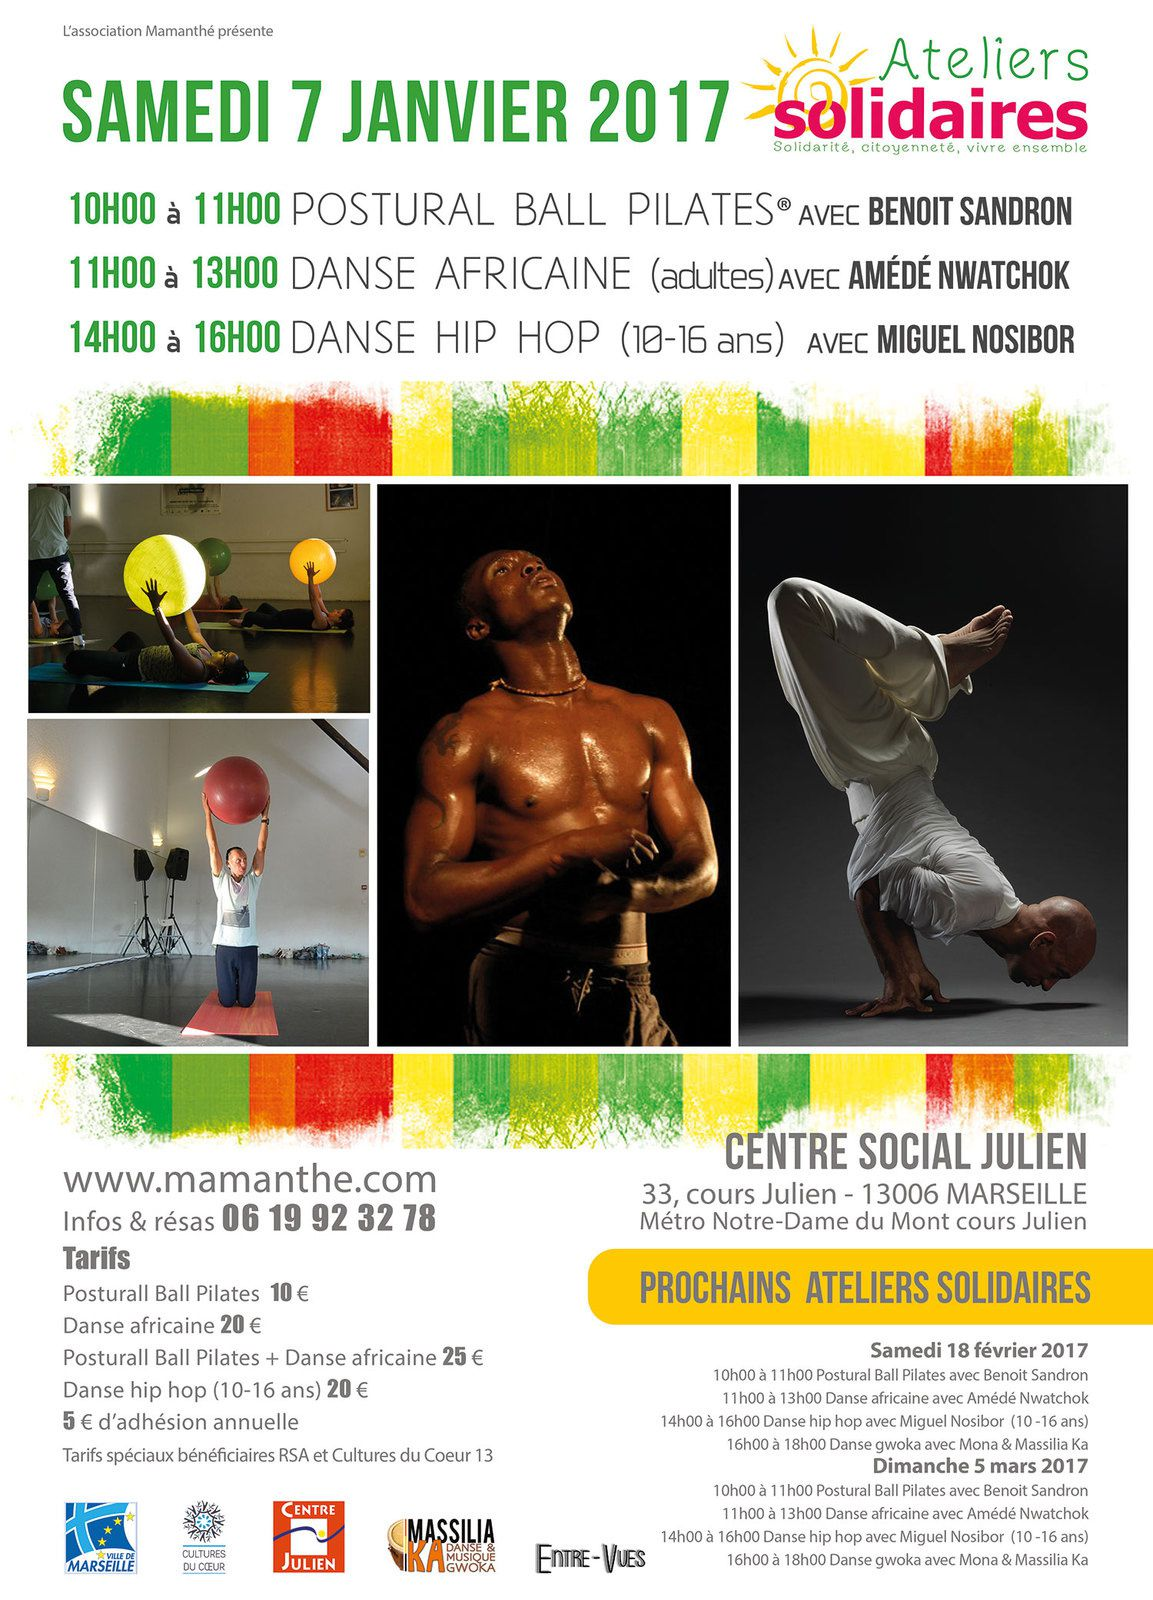 07/01/17 - Ateliers Solidaires - Marseille